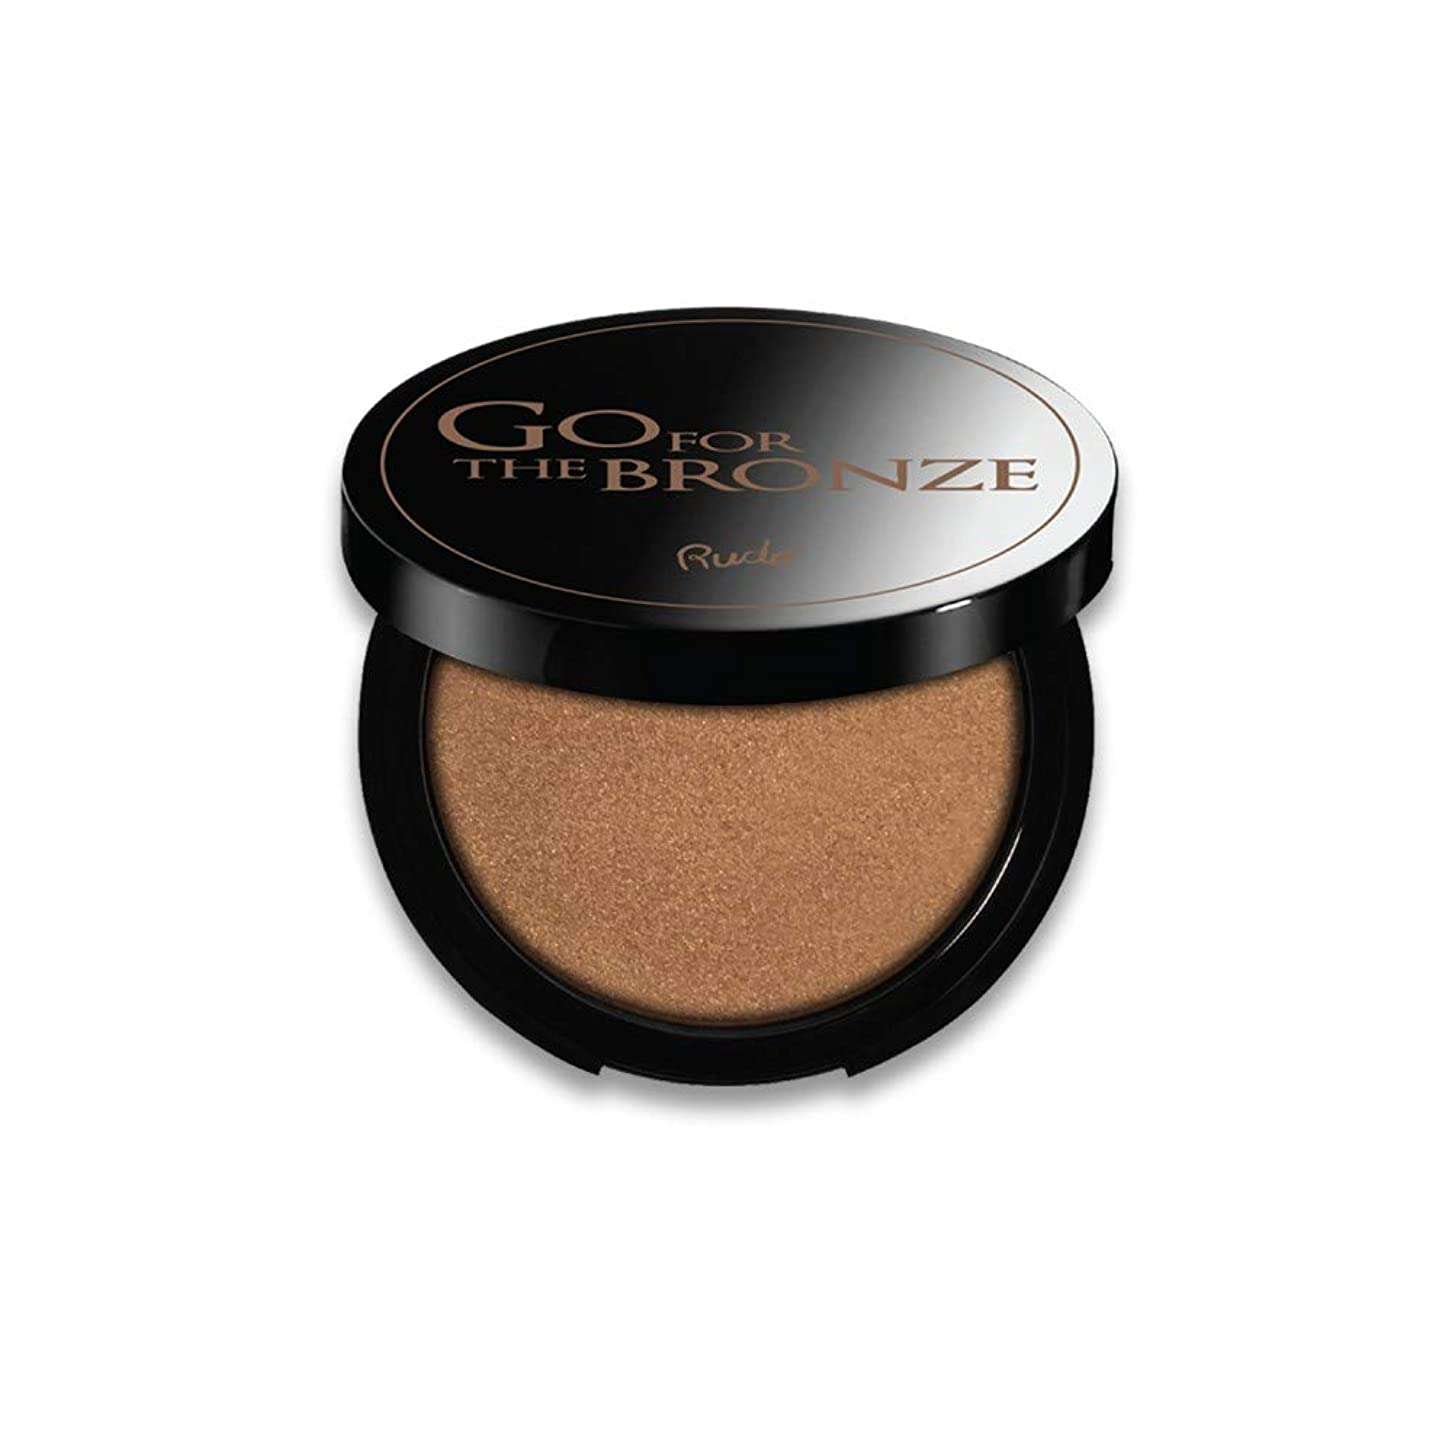 今日進捗マークされた(3 Pack) RUDE Go For The Bronze Bronzer - 3rd Time's A Charm (並行輸入品)